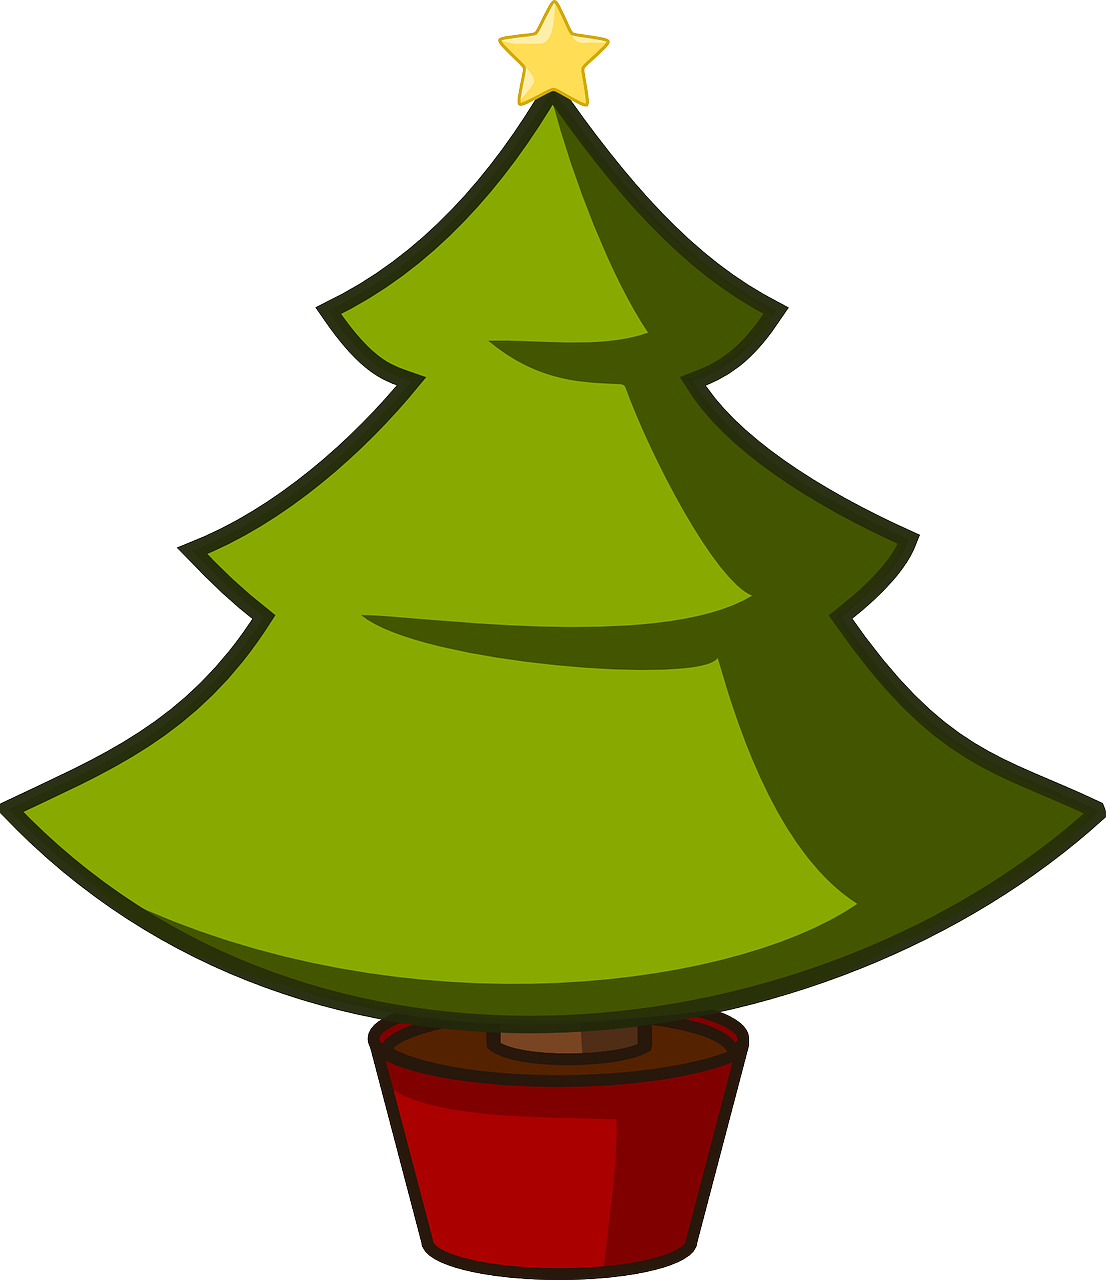 How to draw a Christmas tree: 10 pics - HOW-TO-DRAW in 1 ...